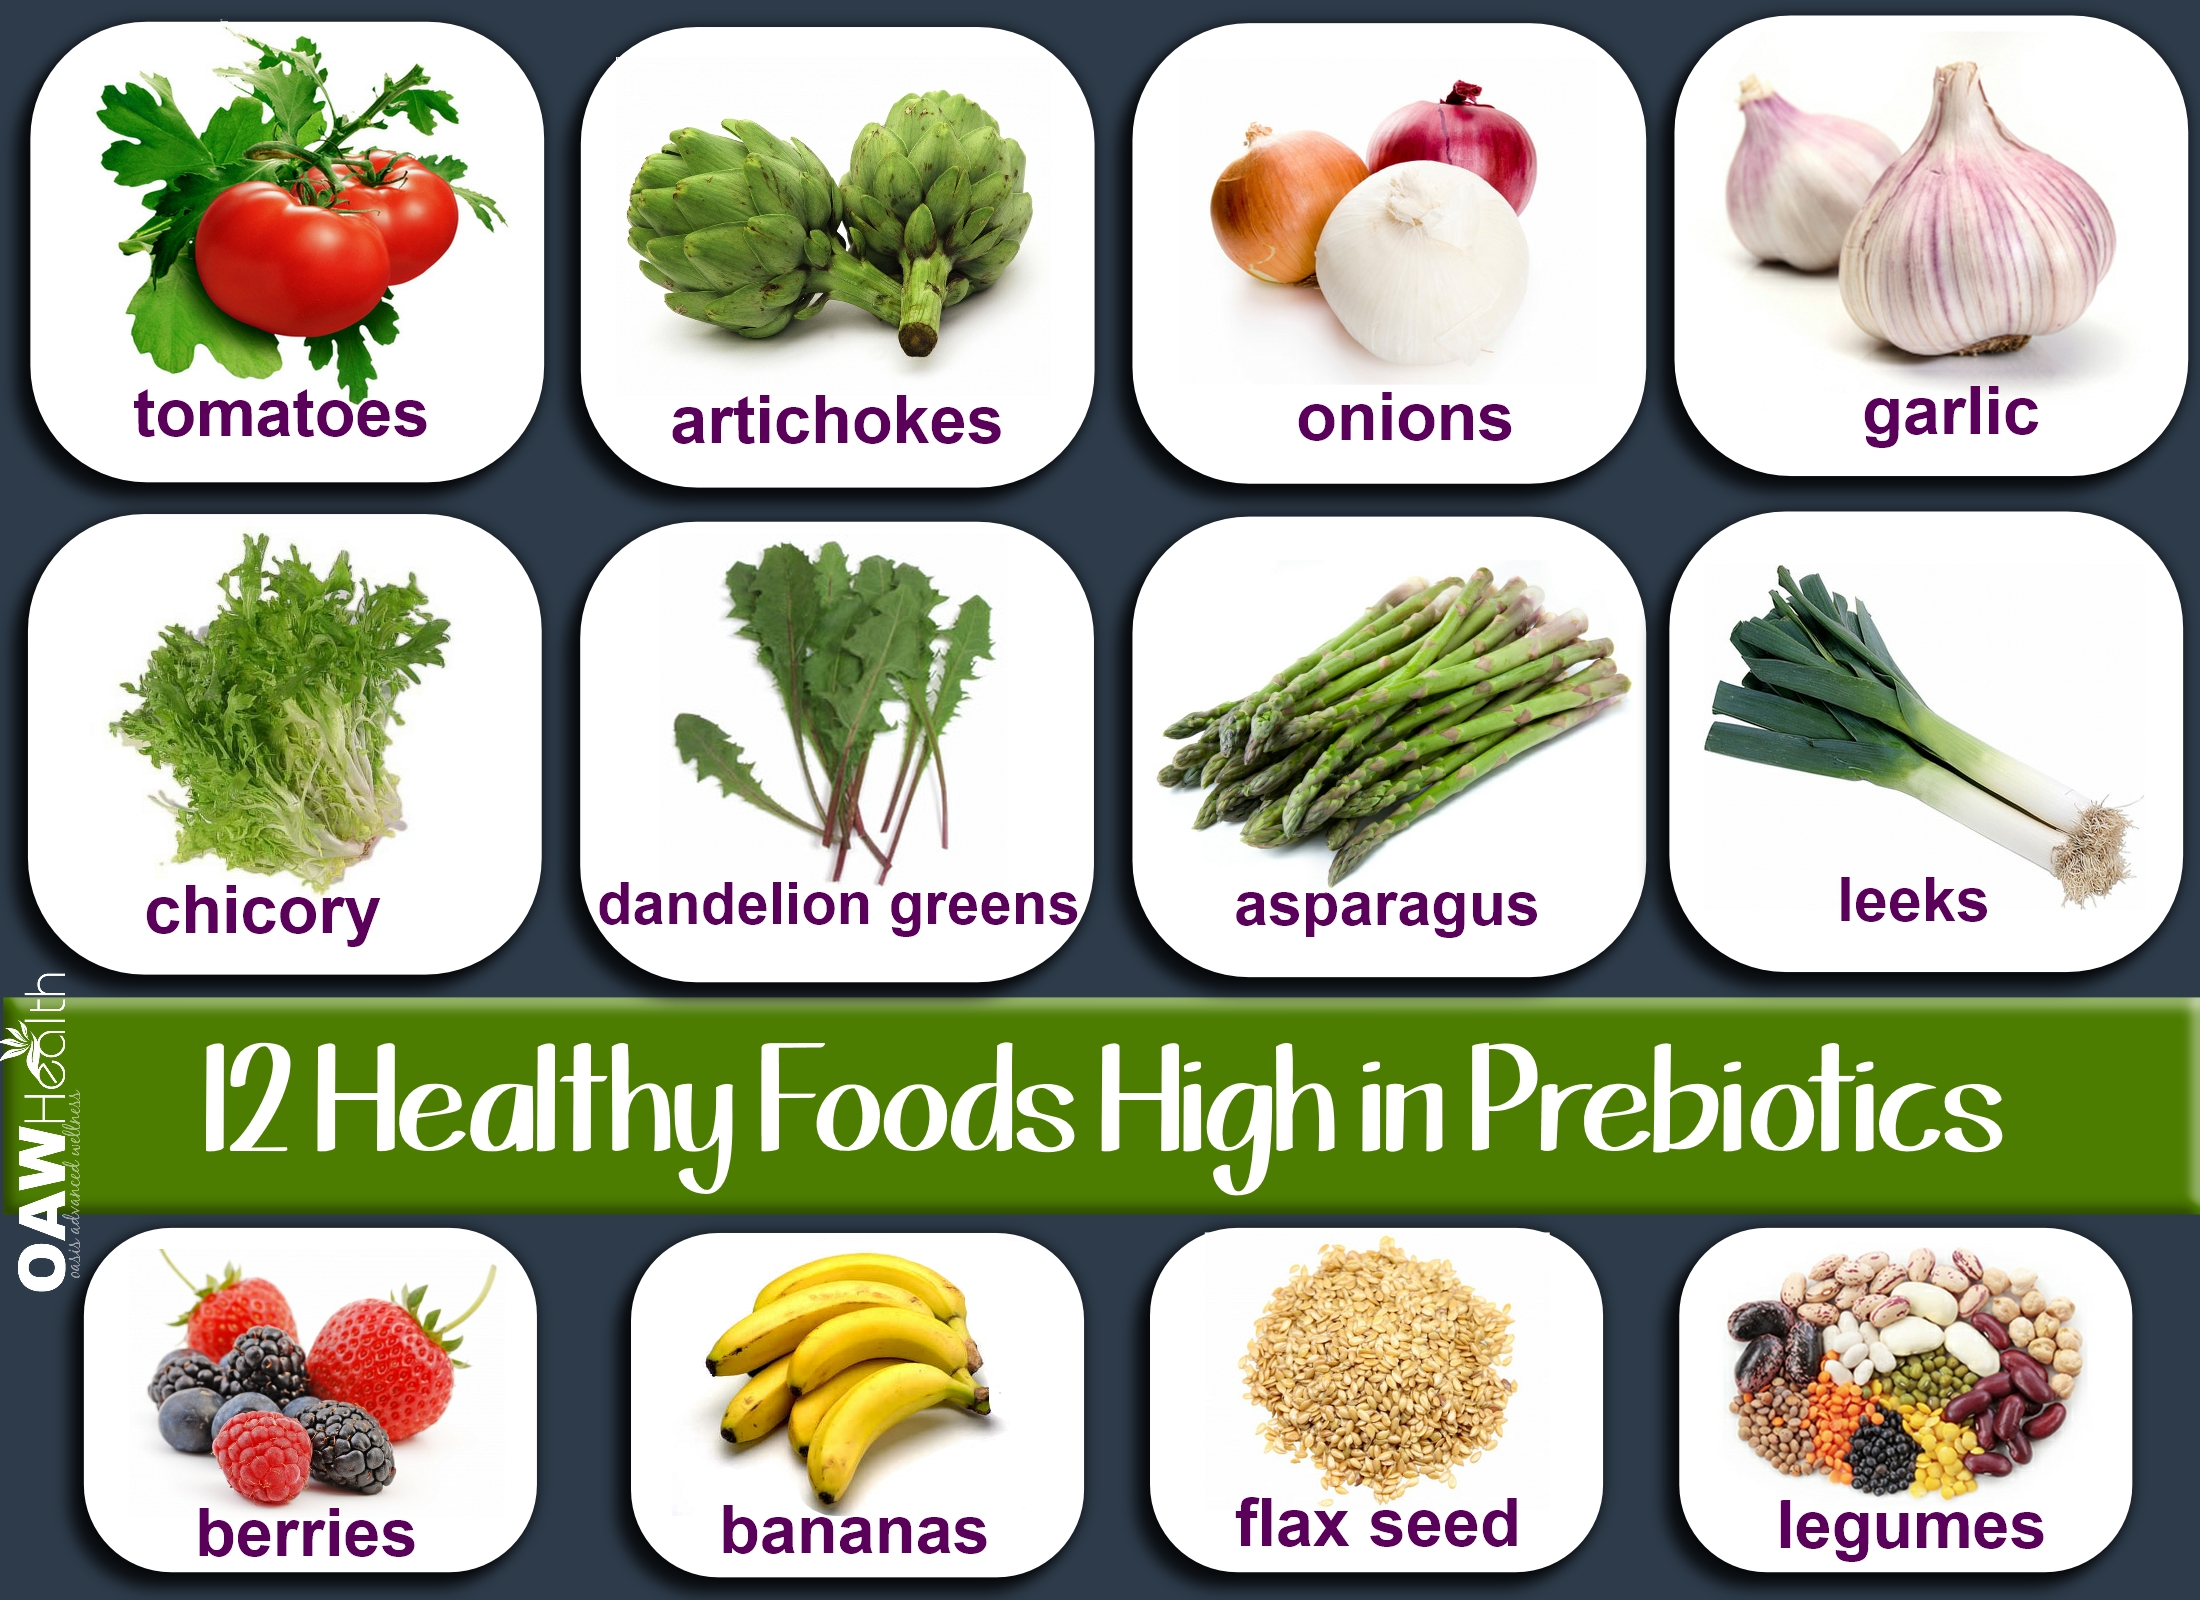 12 Healthy Foods High in Prebiotics